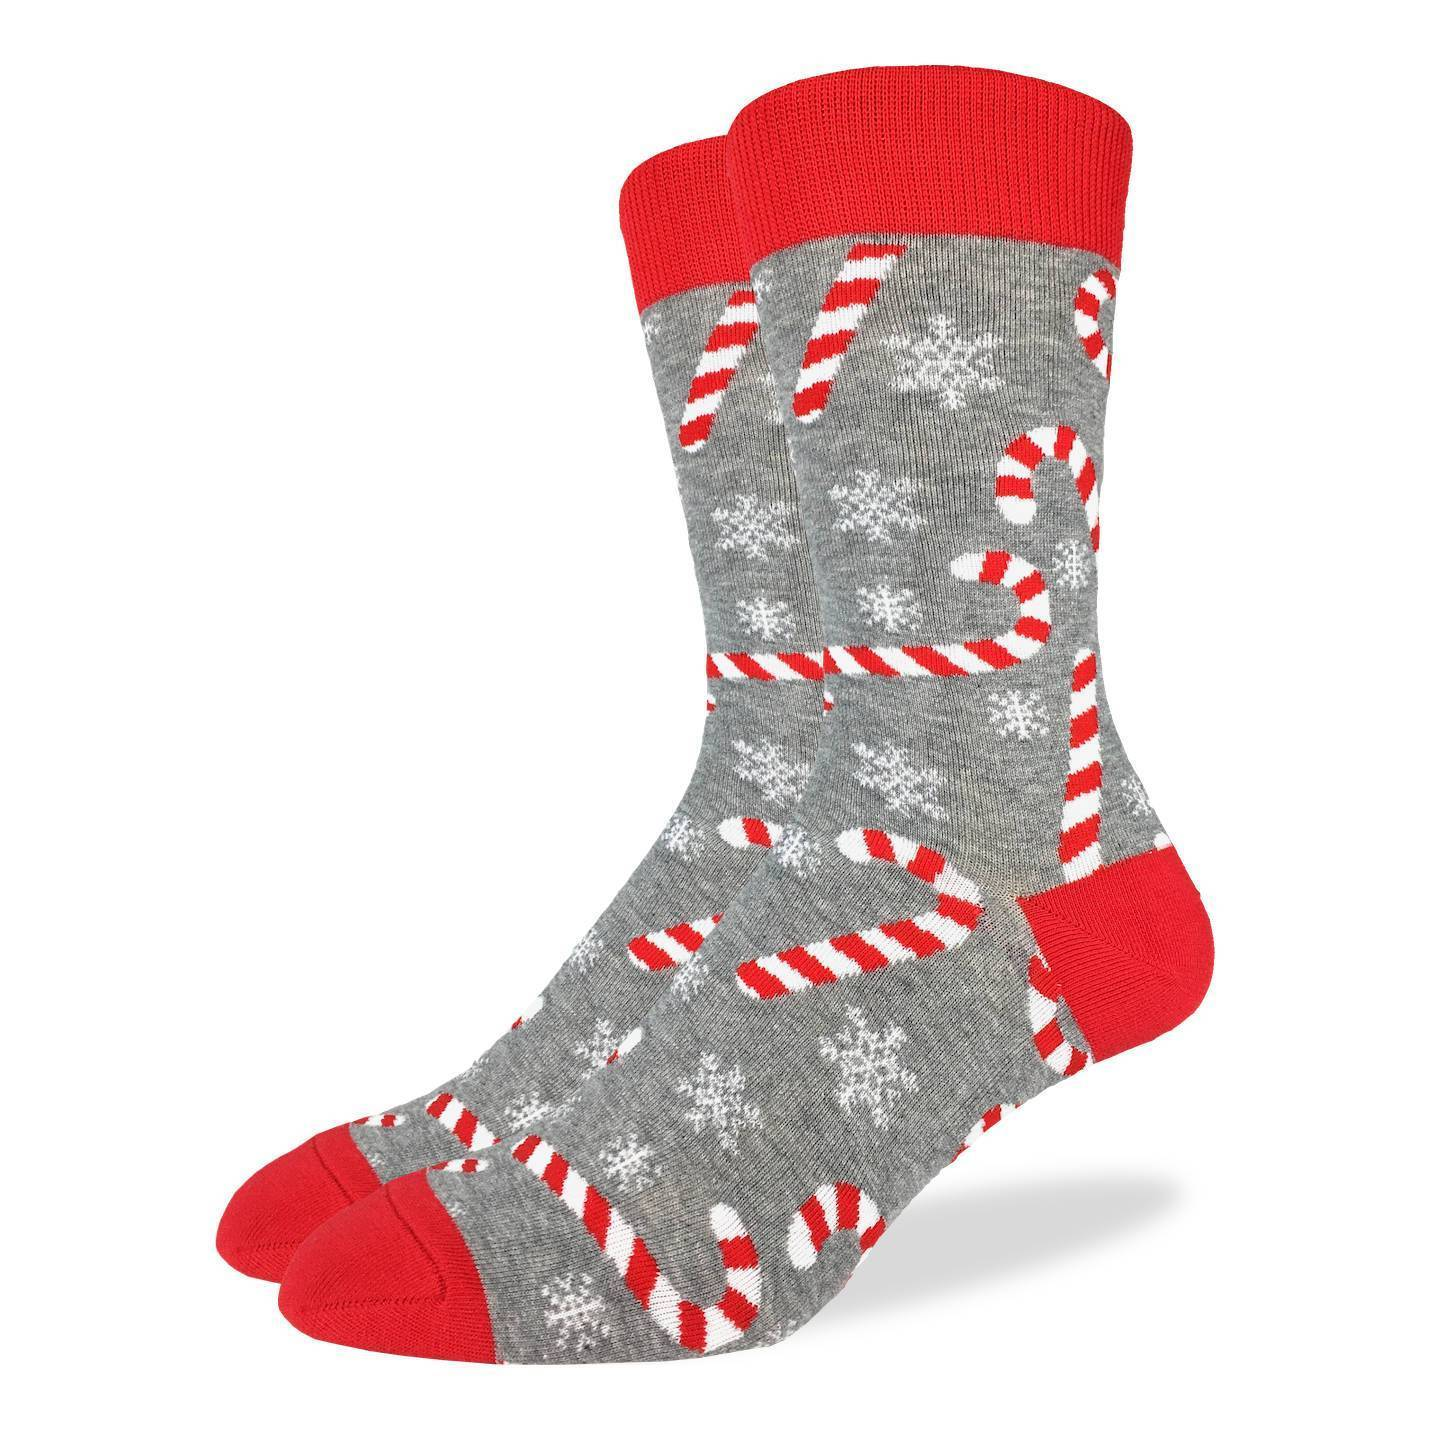 Men's Candy Canes Socks - Good Luck Sock